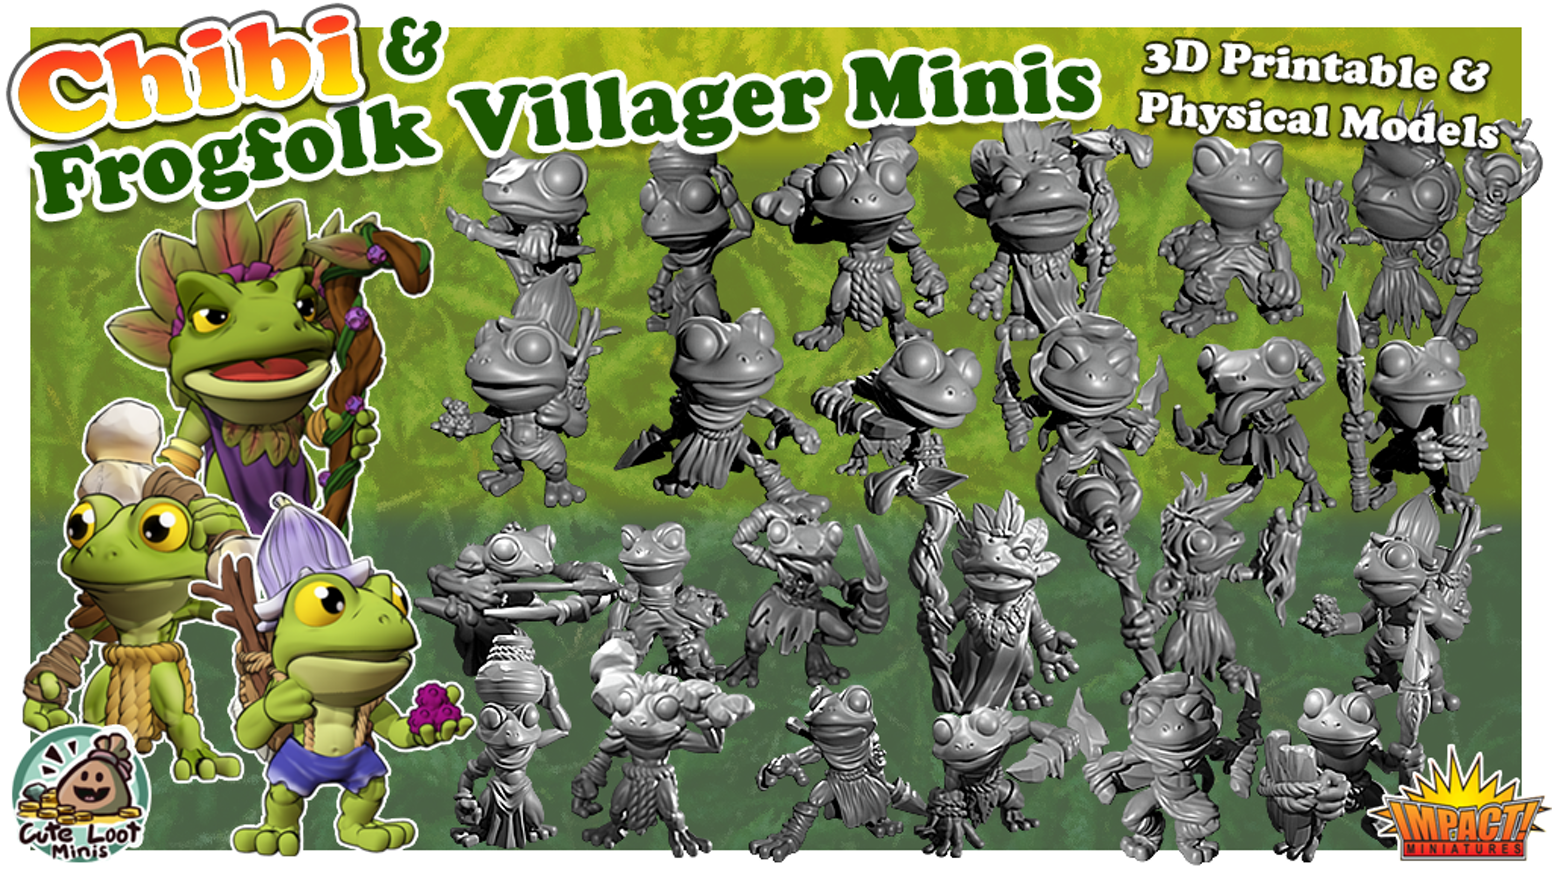 Frogfolk Villager Miniatures - 3-D Printable STL files and Physical models in both RPG and Chibi styles